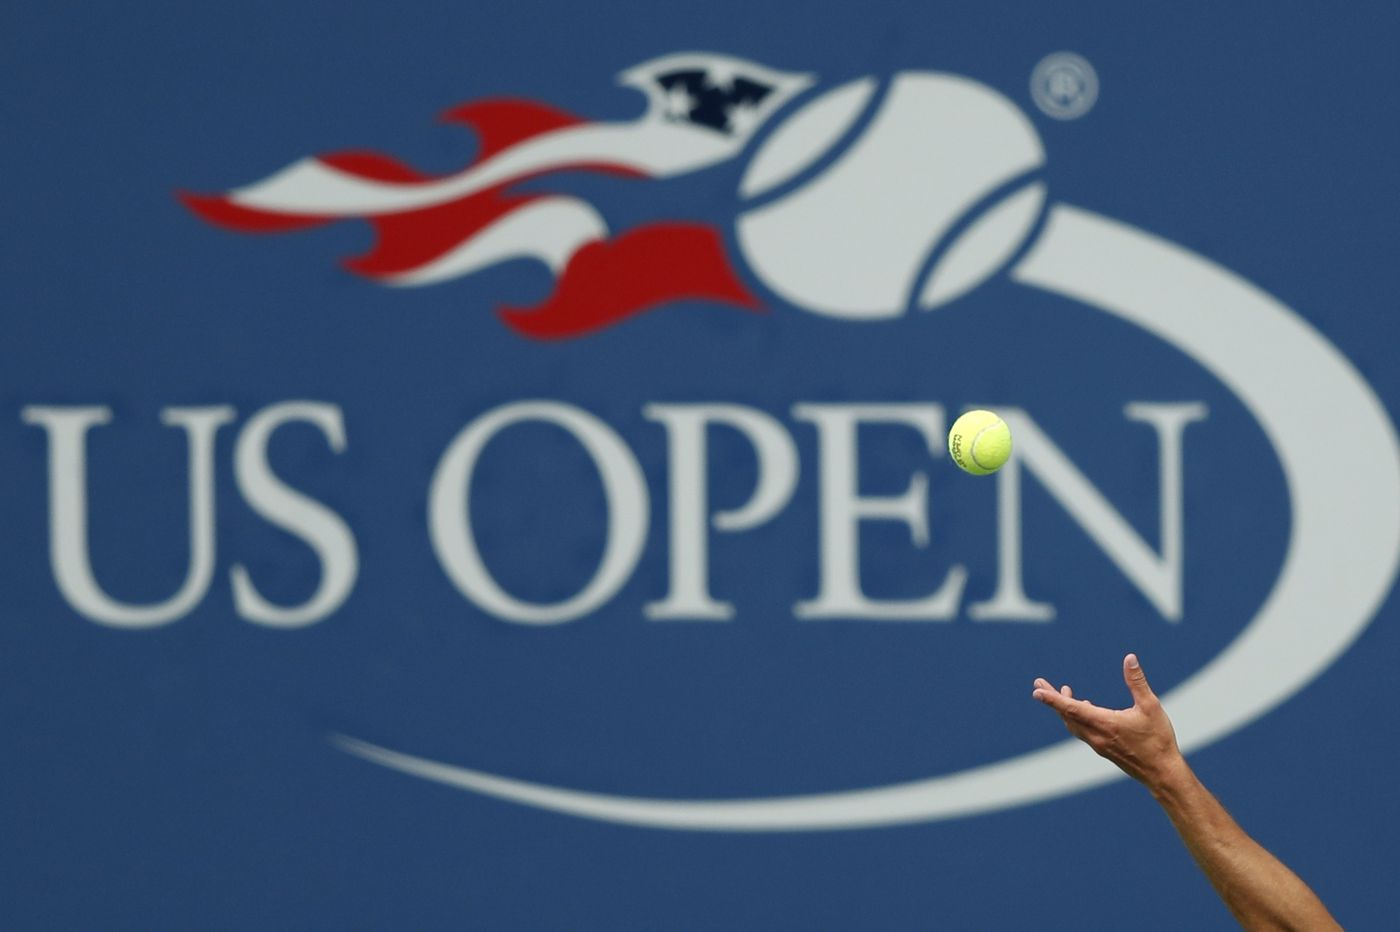 U.S. Open tennis tournament, starting in late August, gets go-ahead from New York Gov. Cuomo